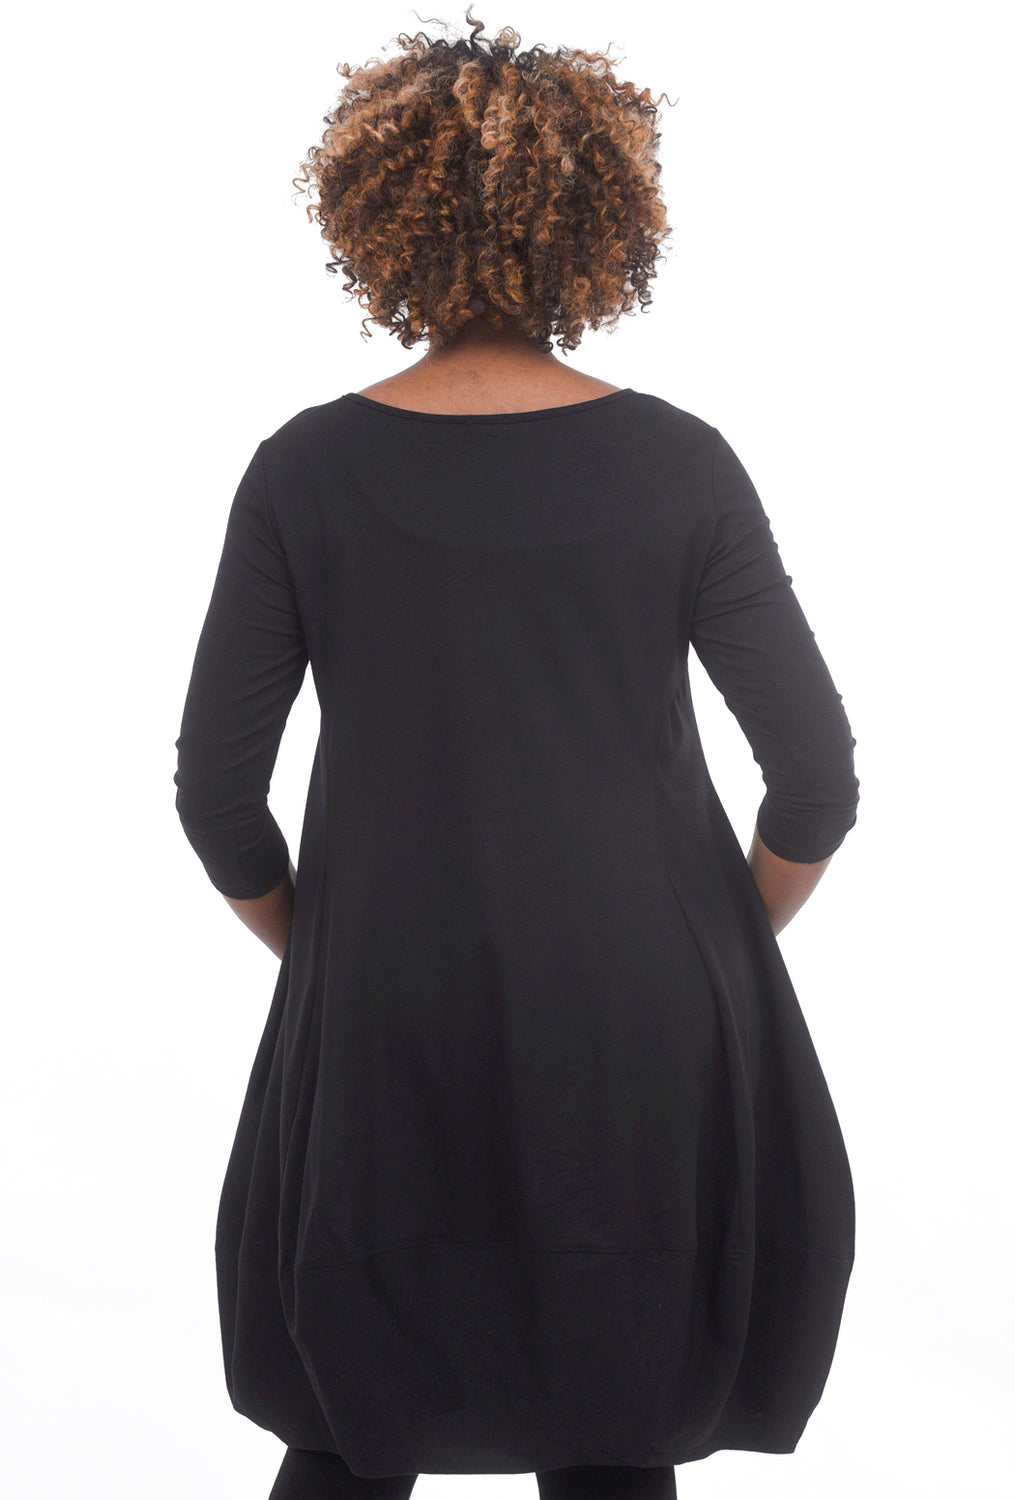 Just Jill Knit Jersey Tulip Dress, Black